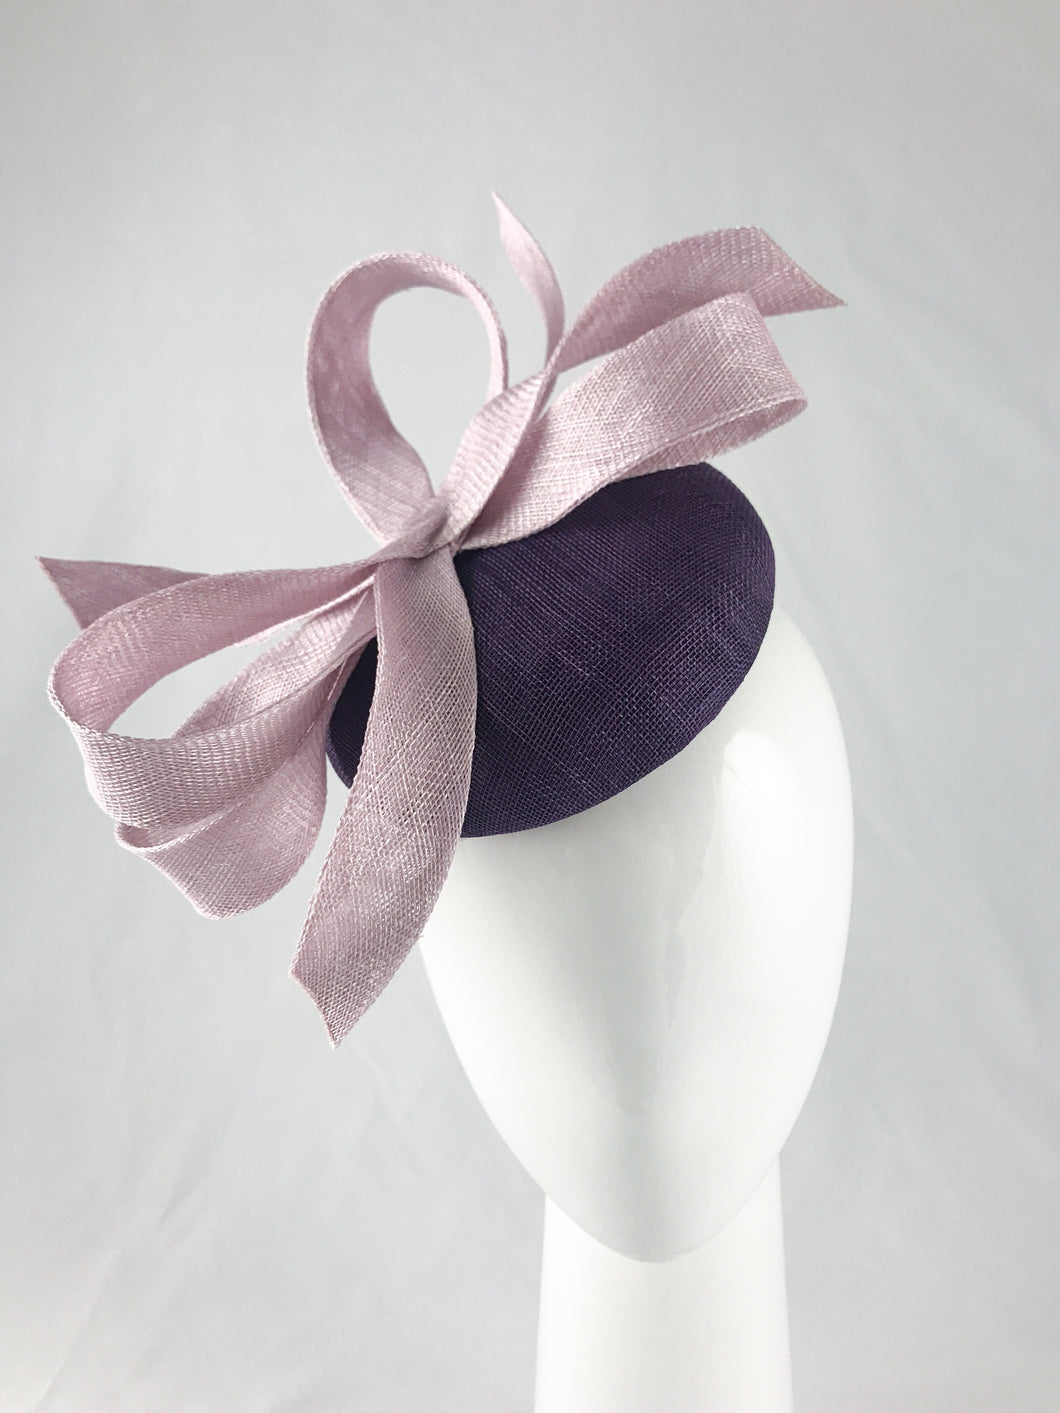 Deep Purple Sinamay Base with Pale Lilac Abstract Bow